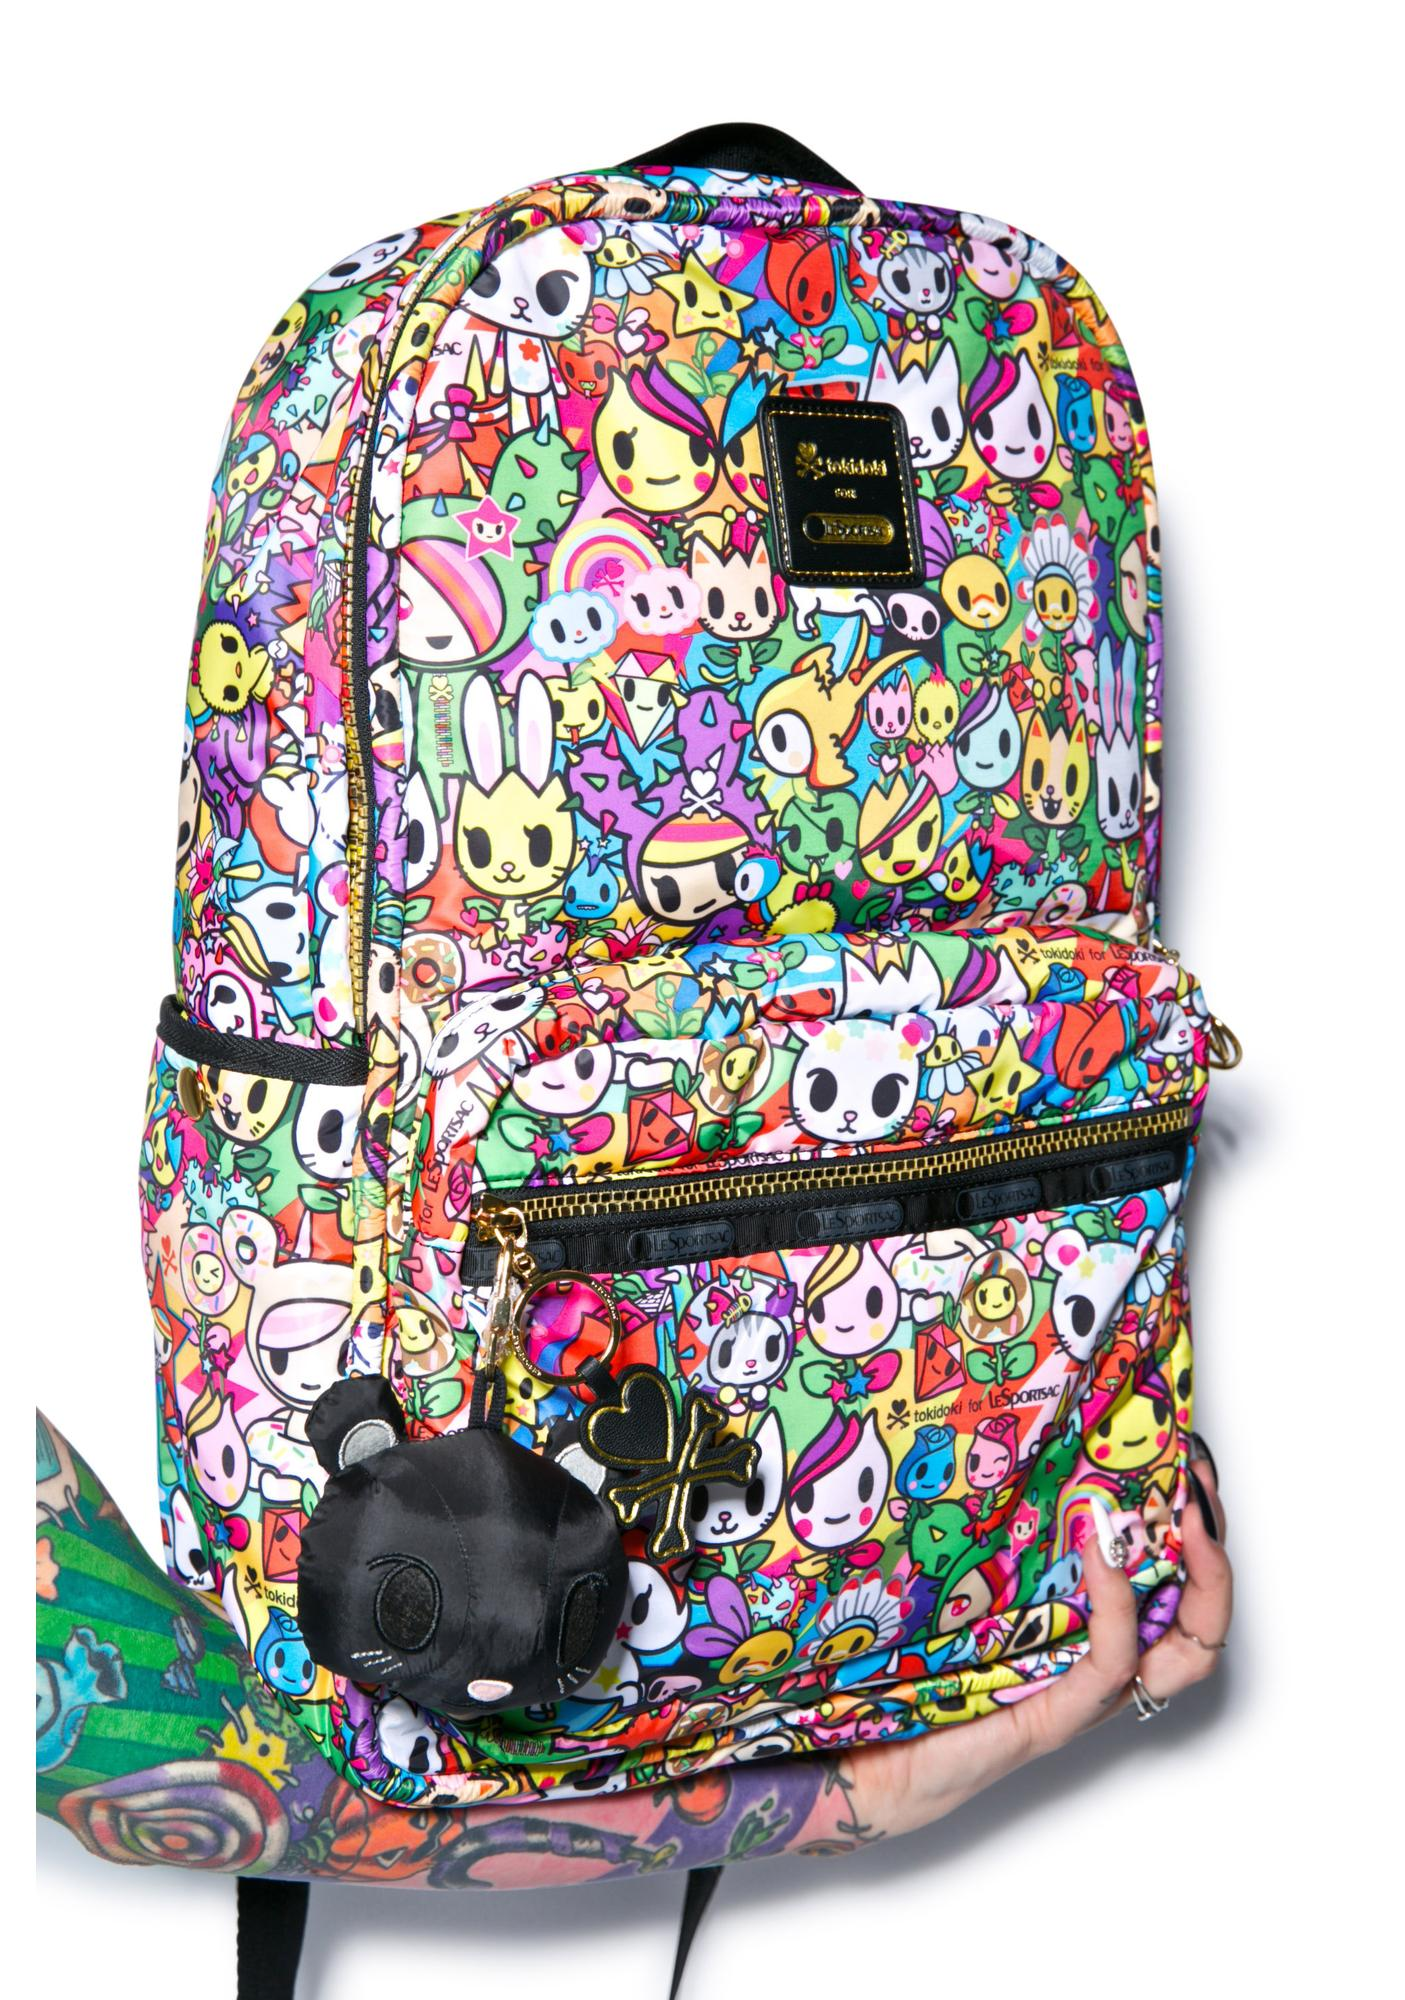 Tokidoki Urbana Backpack